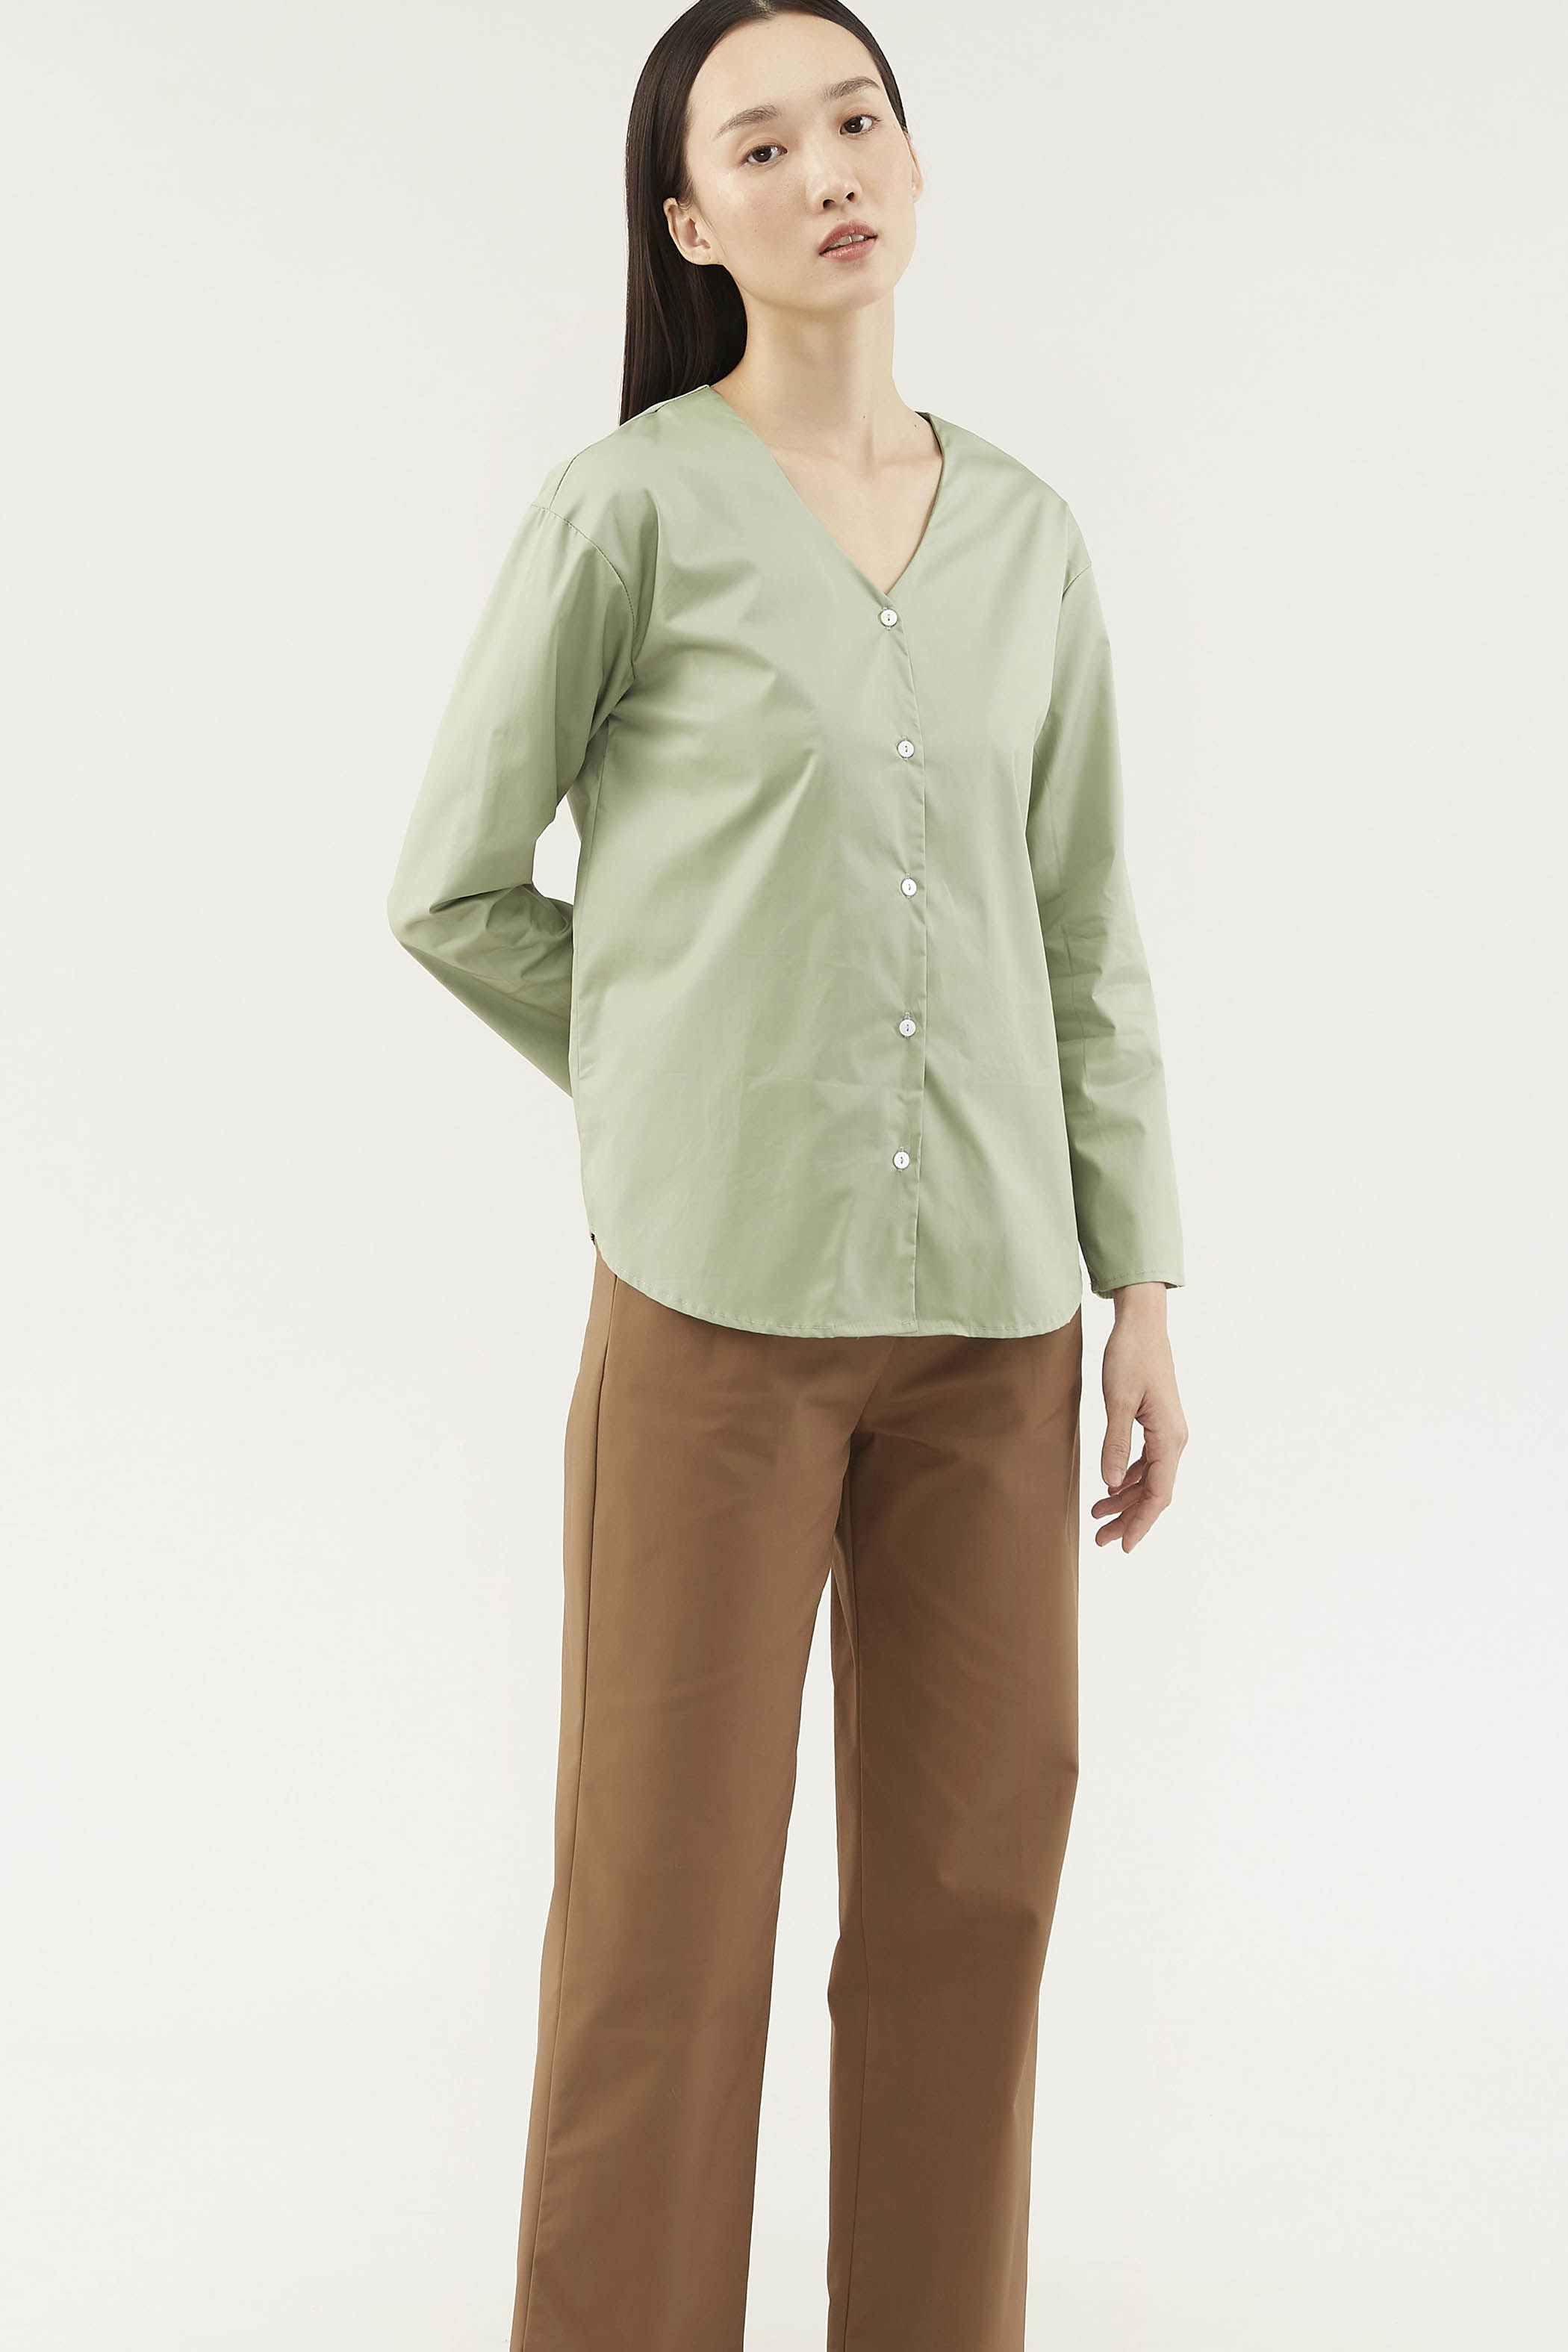 Erynne V-neck Blouse